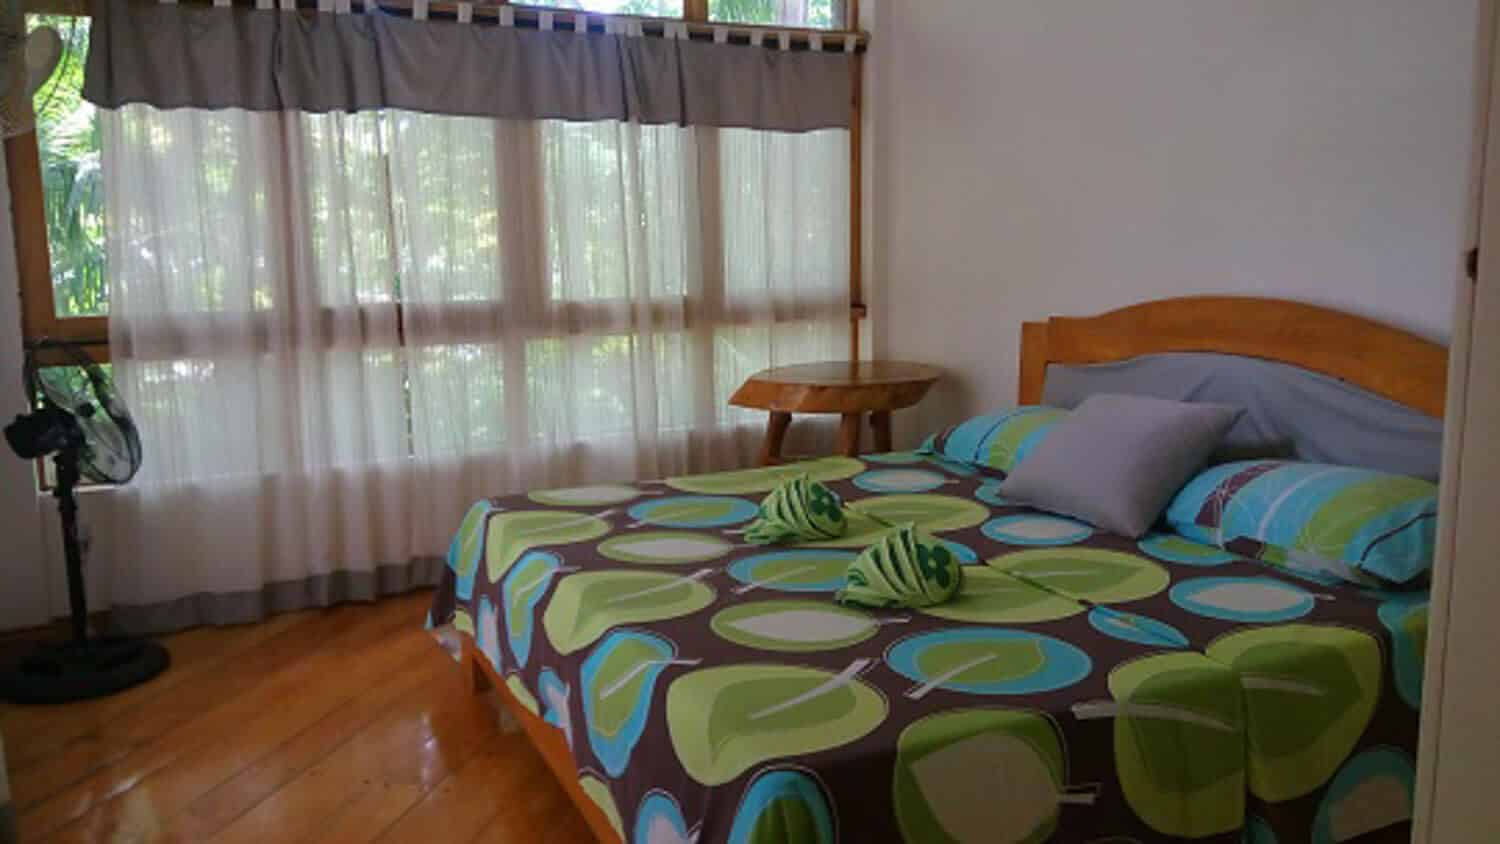 Bed, Nightstand, Windows with curtains, Electric Fan